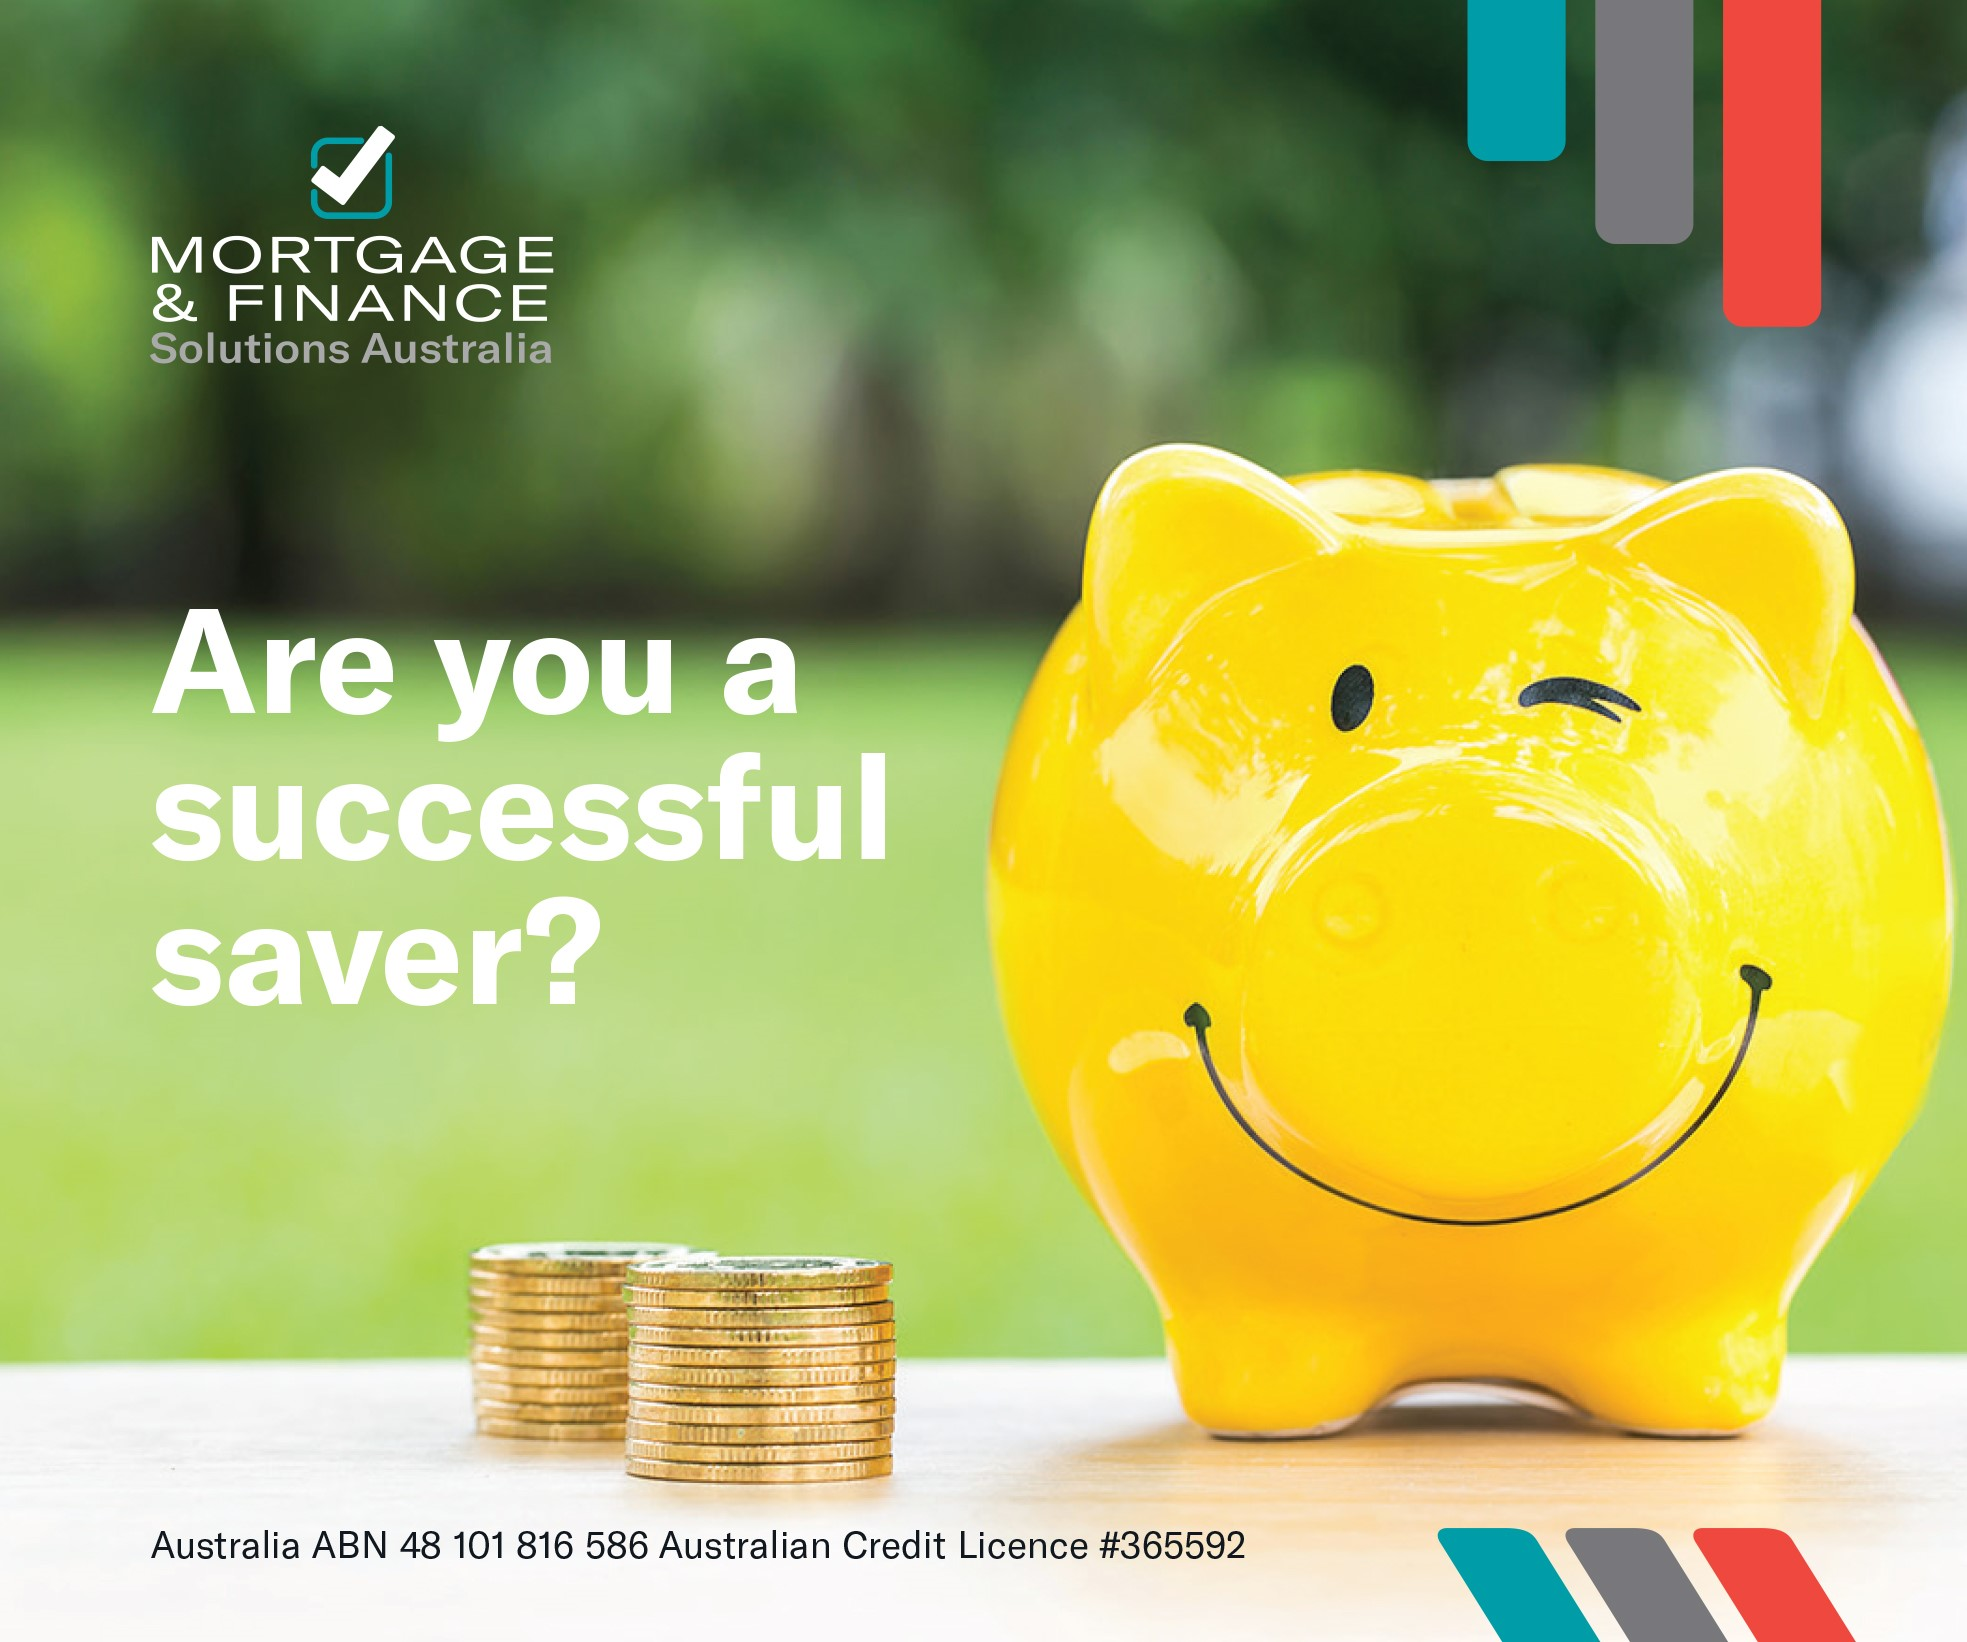 Are you a successful saver?